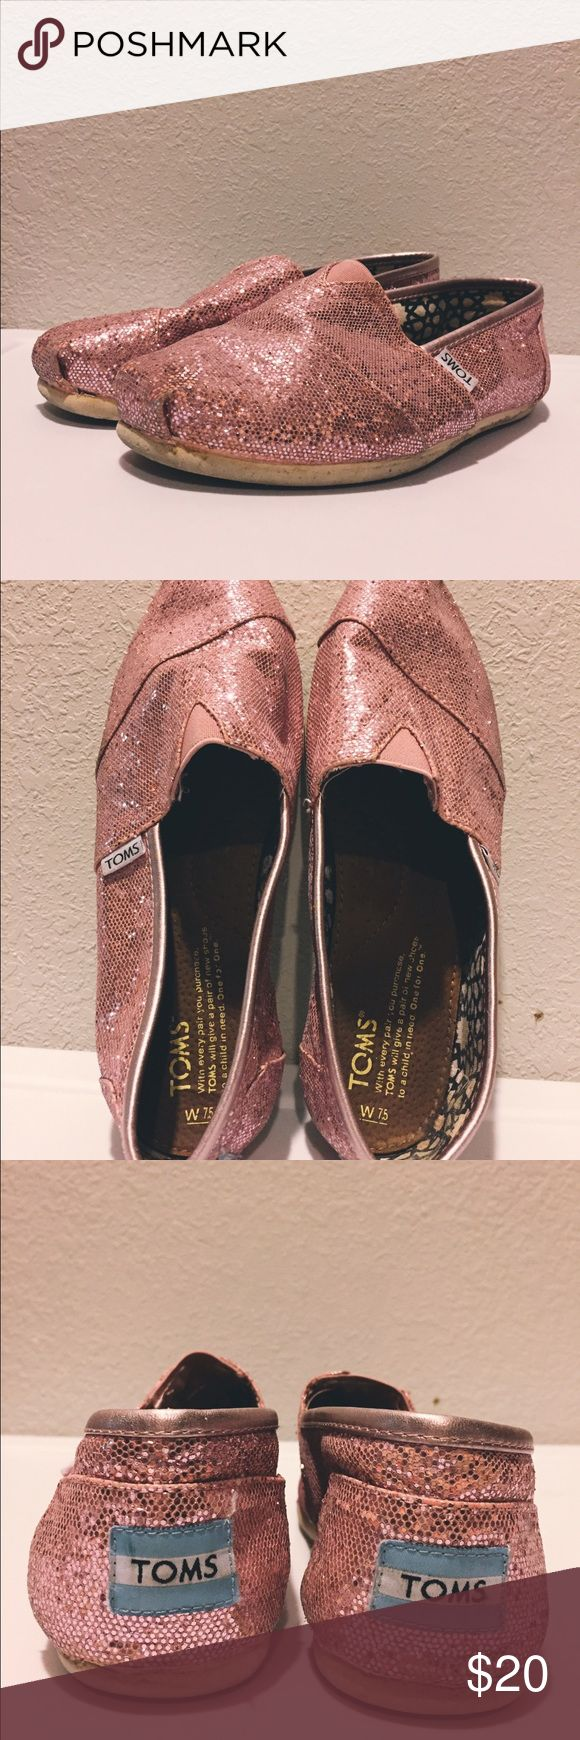 "Woman's pink glitter toms Worn but in good condition. They don't have the normal ""worn toms smell"" lol They are true to size and don't stretch. I haven't worn them in a reeeally long time. TOMS Shoes"